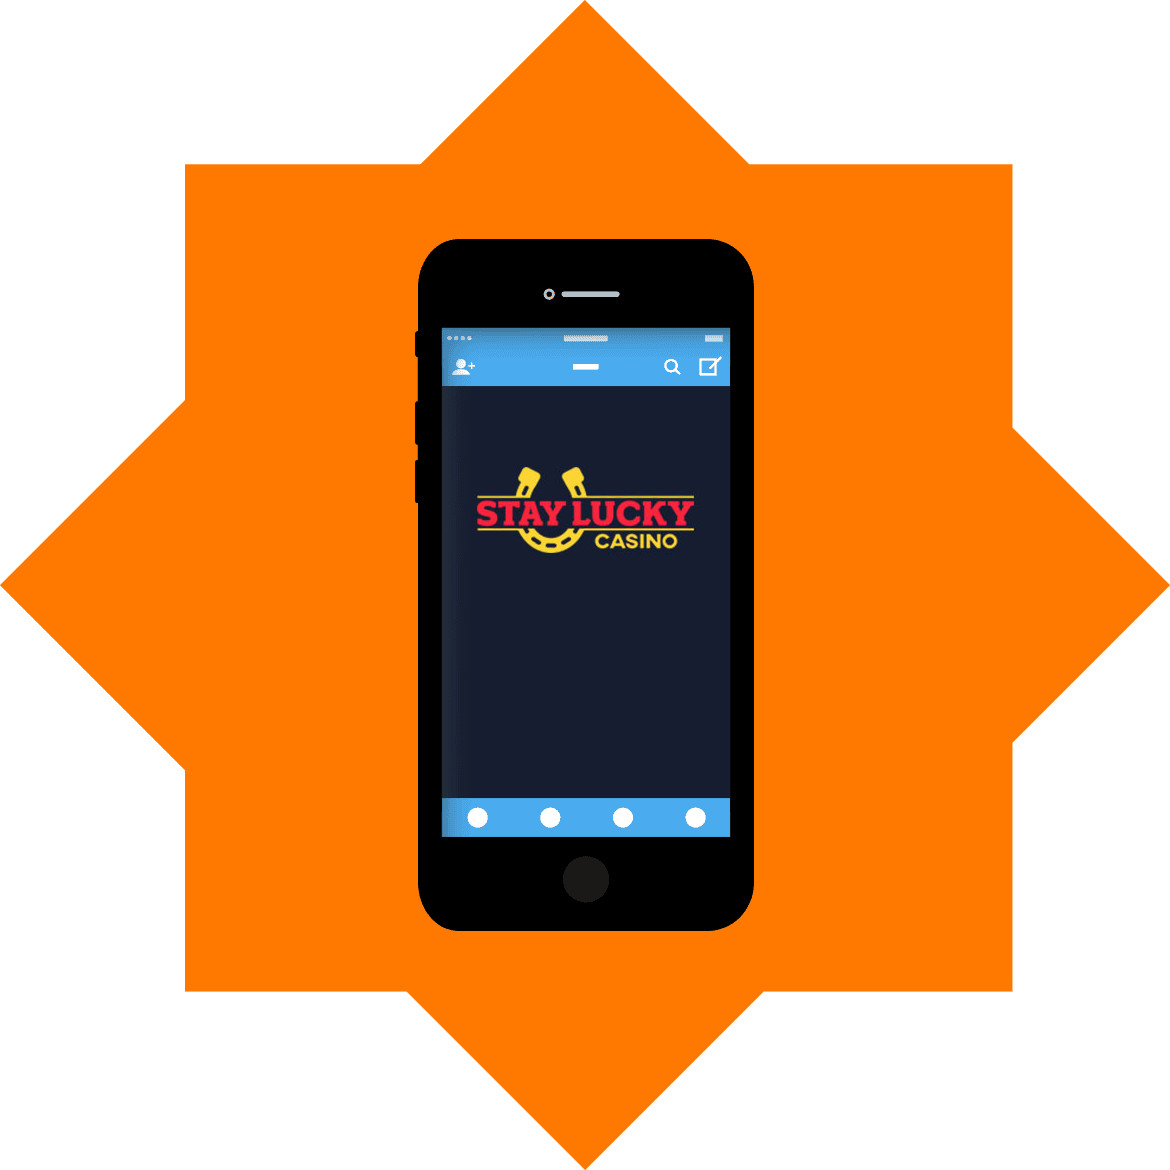 Staylucky - Mobile friendly